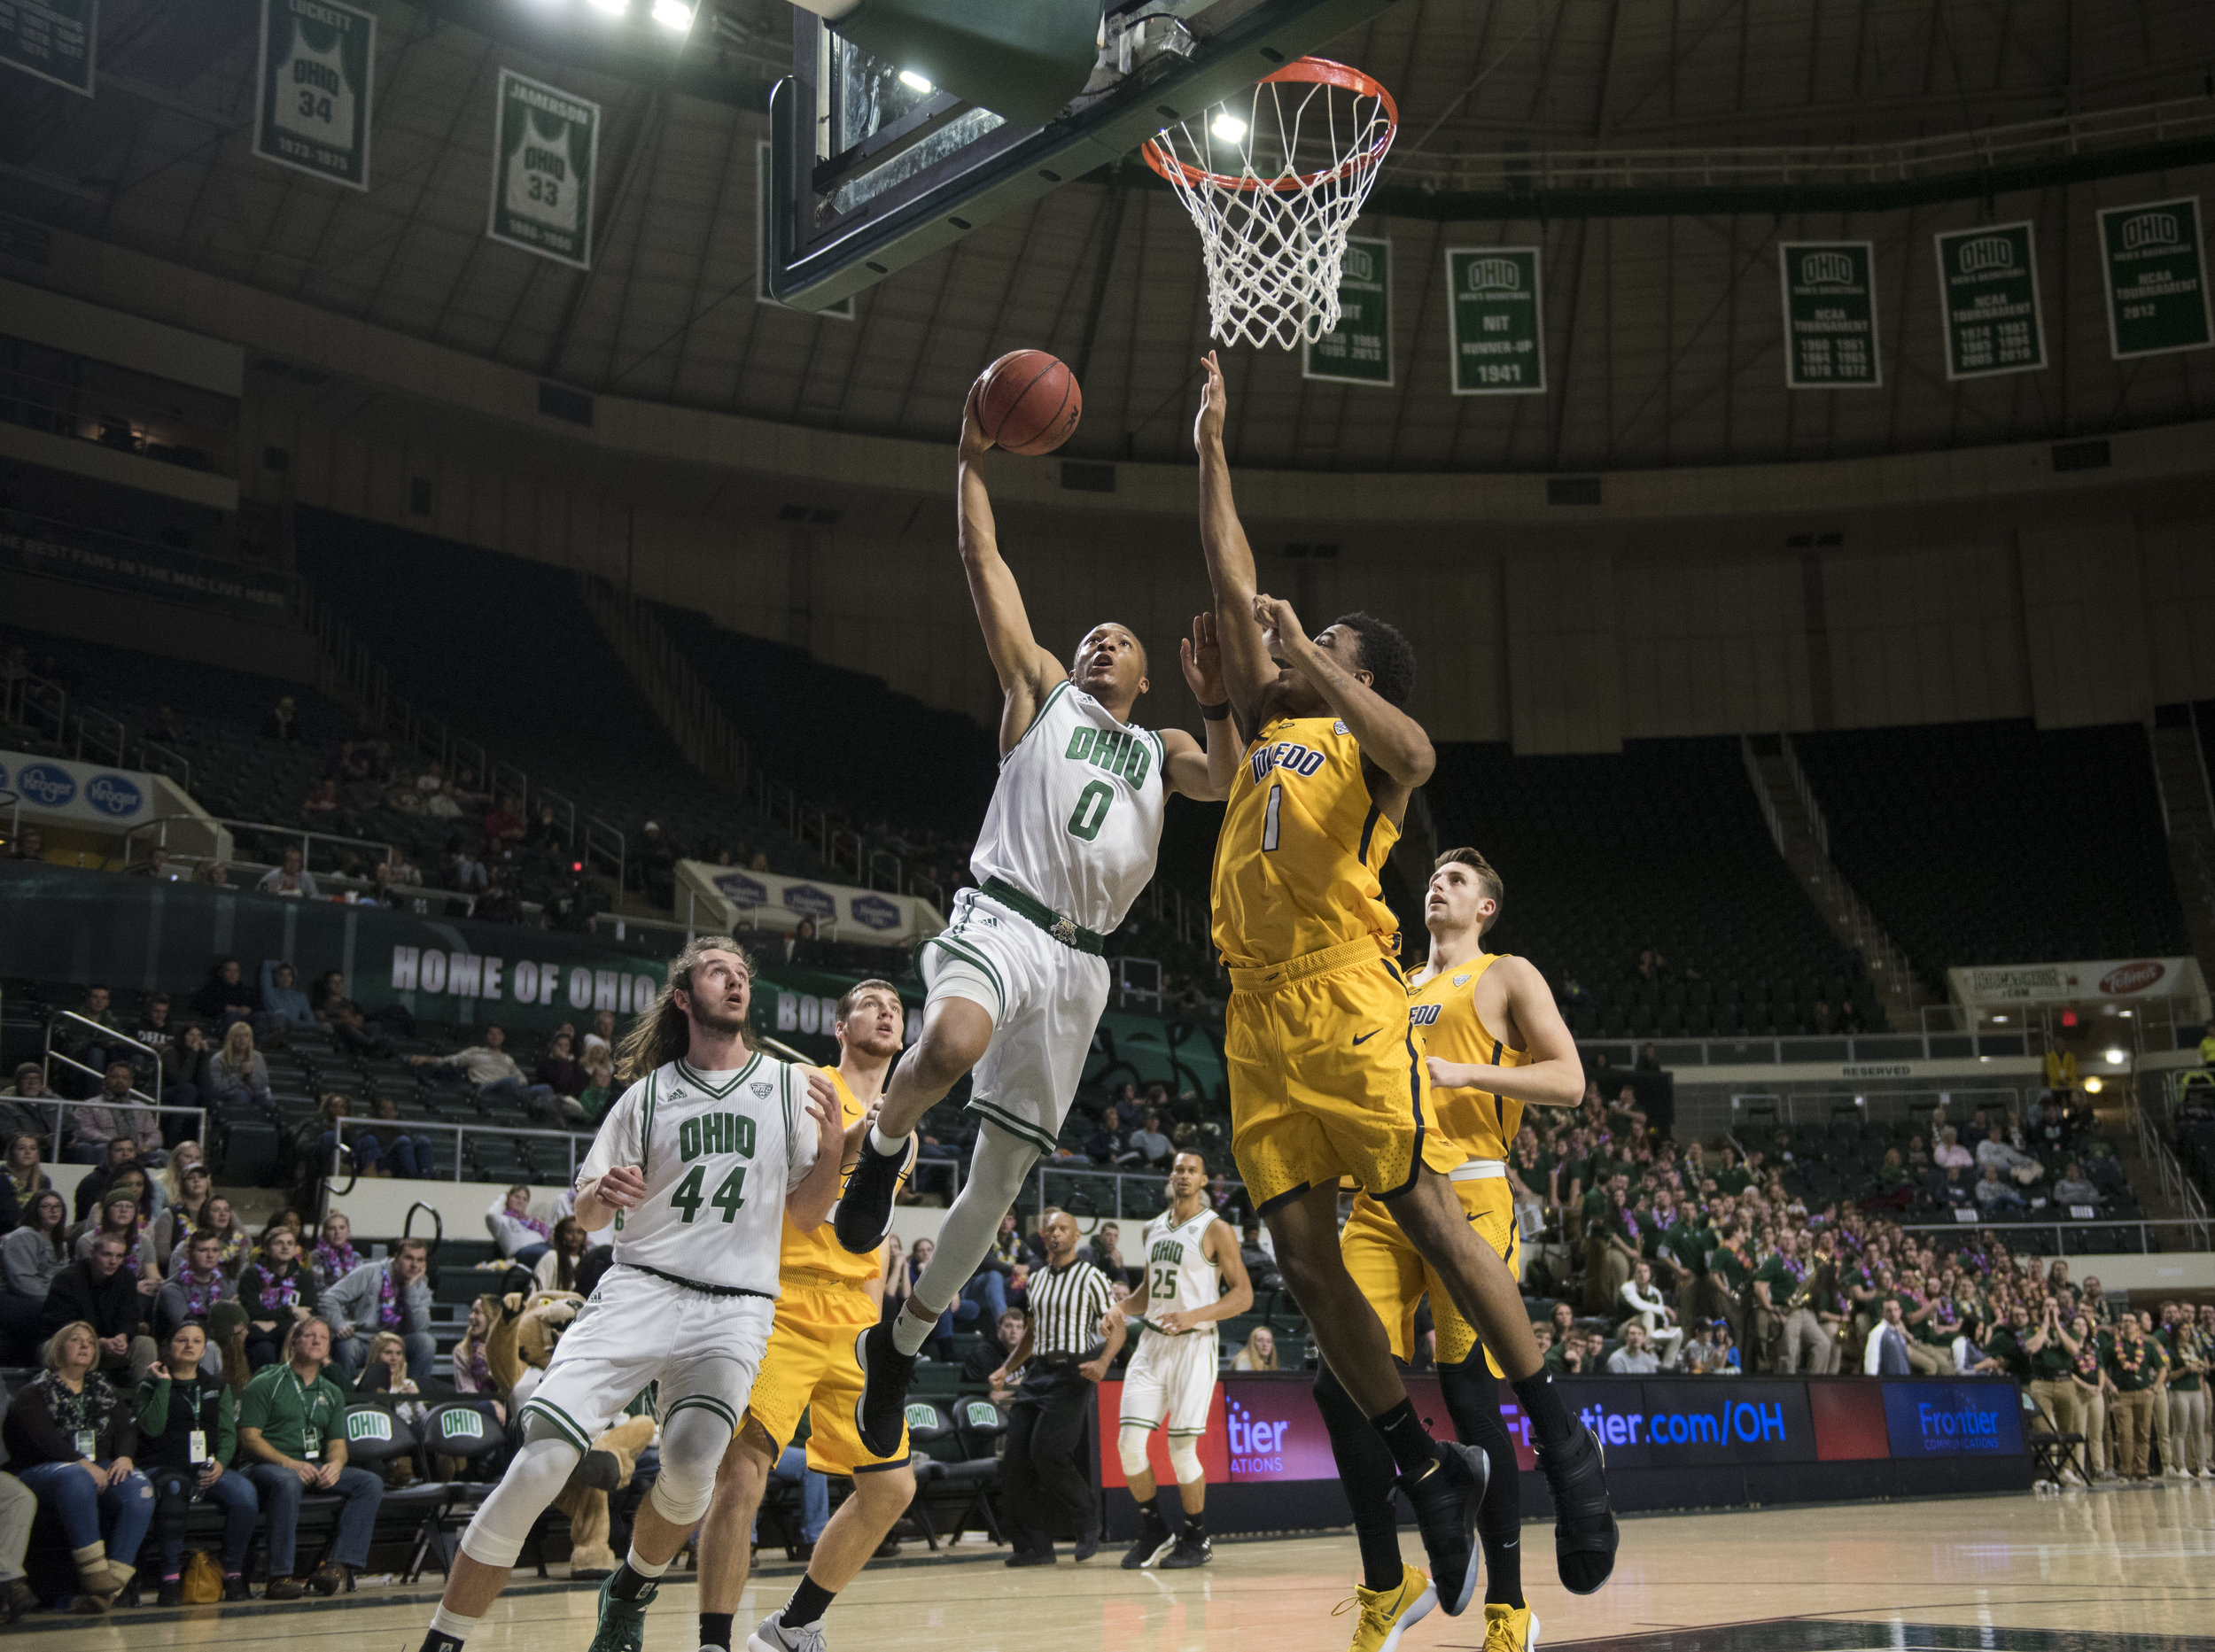 Ohio University's Zach Butler gets blocked by Toledo as he drives to the basket on Jan. 16, 2018.